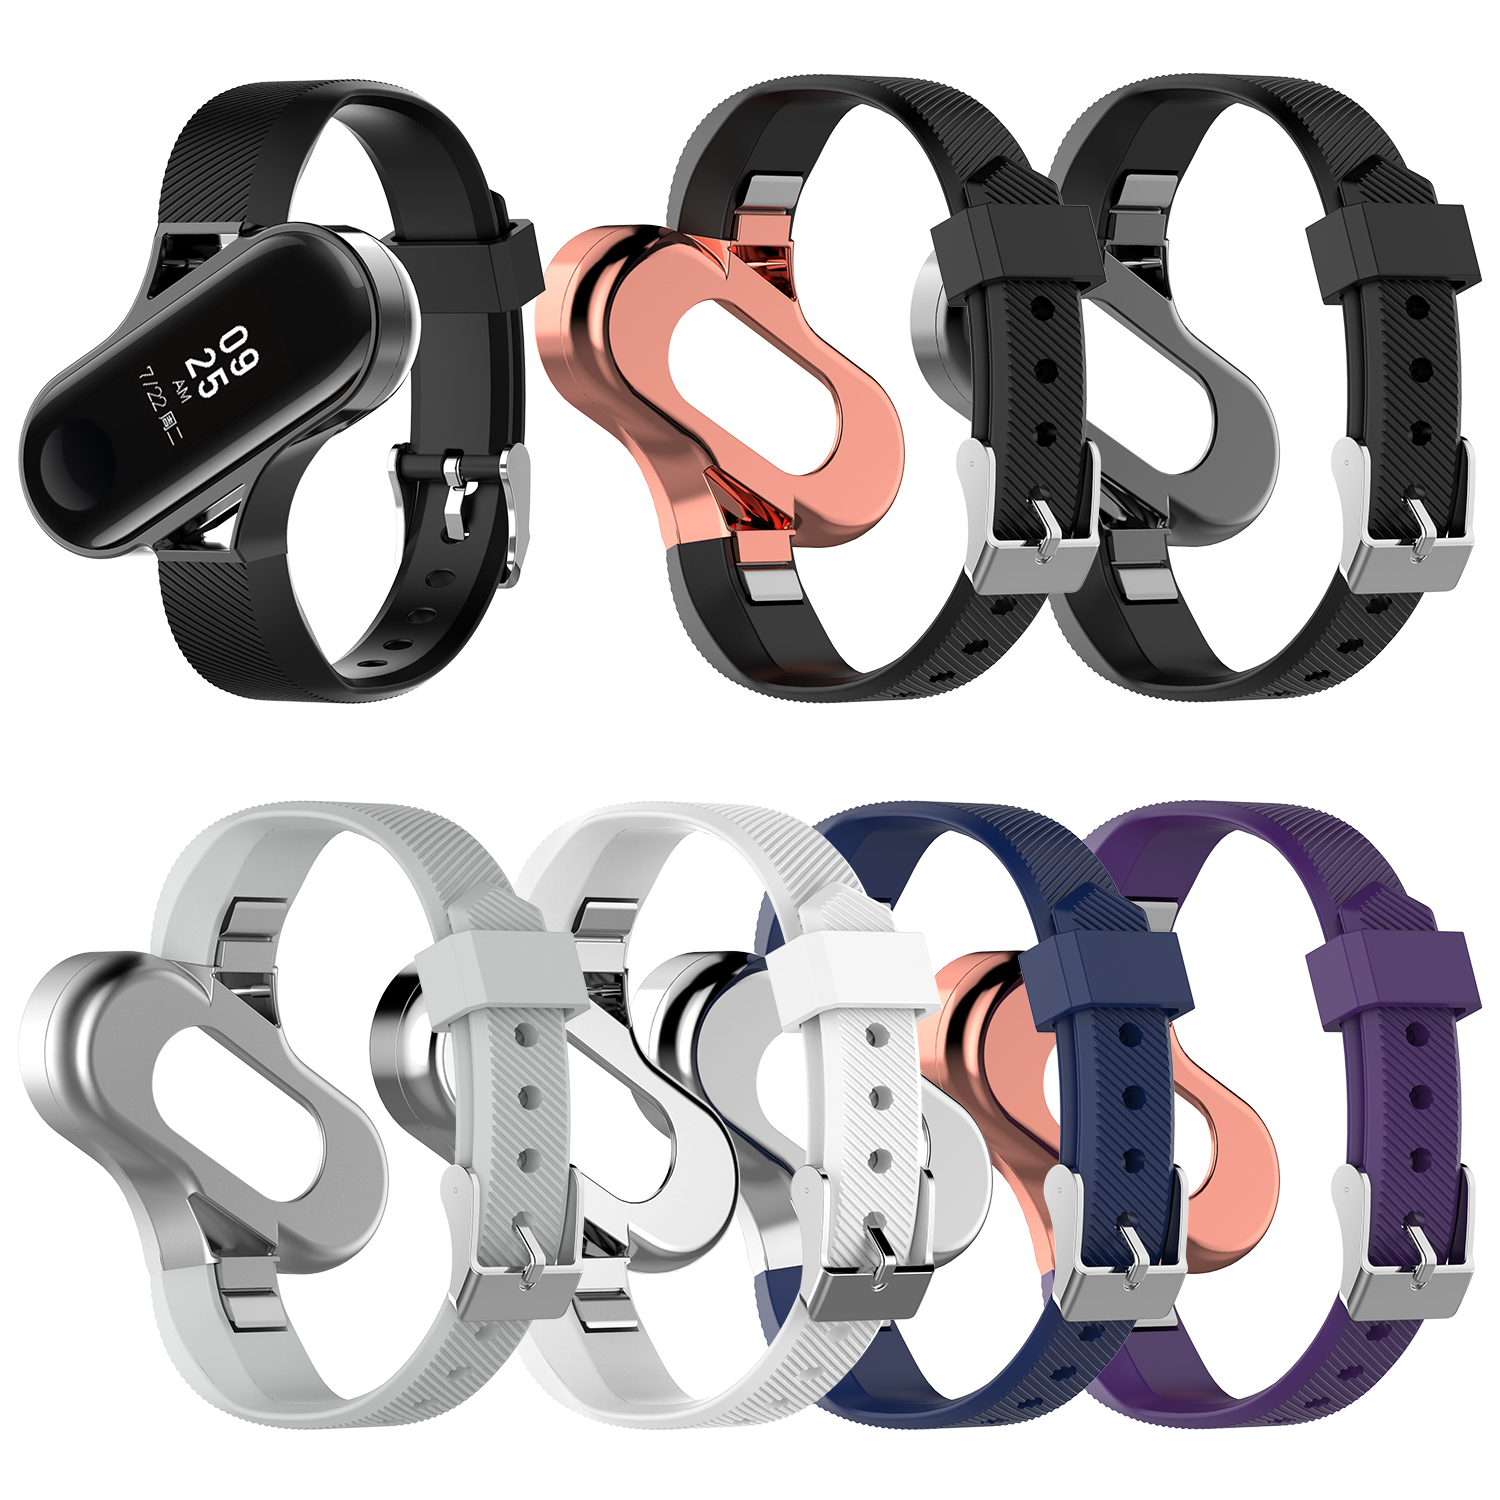 For Xiaomi Mi Band 3 Silicone Tainless Steel Wrist Strap MetalWatch Smart Bracelet Not For Miband 4 Belt Replaceable Watch Strap